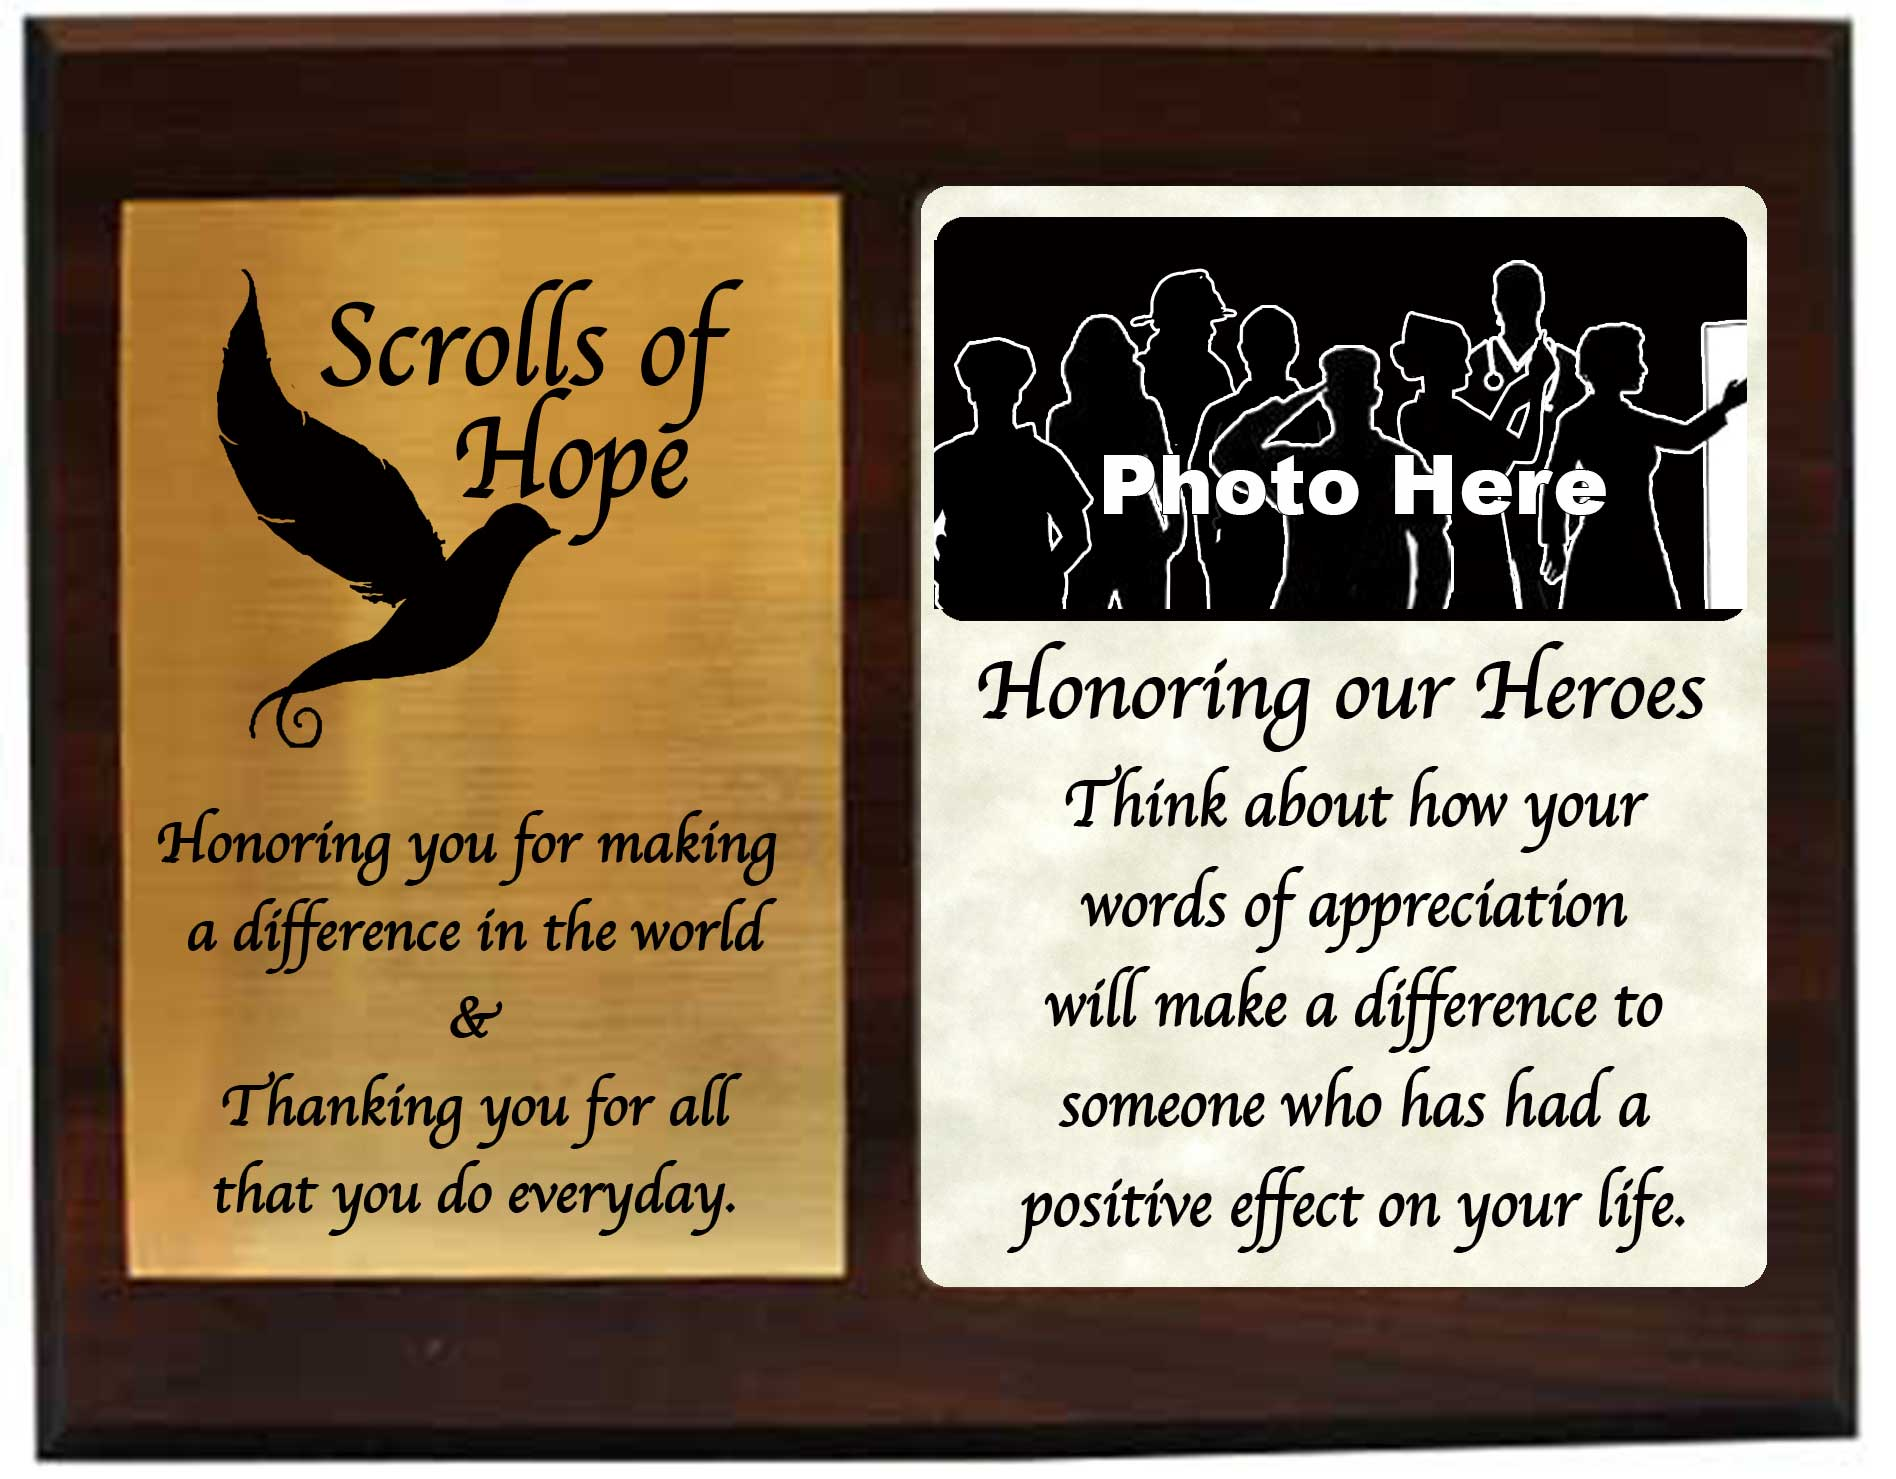 Send Scrolls of Hope your Heroes